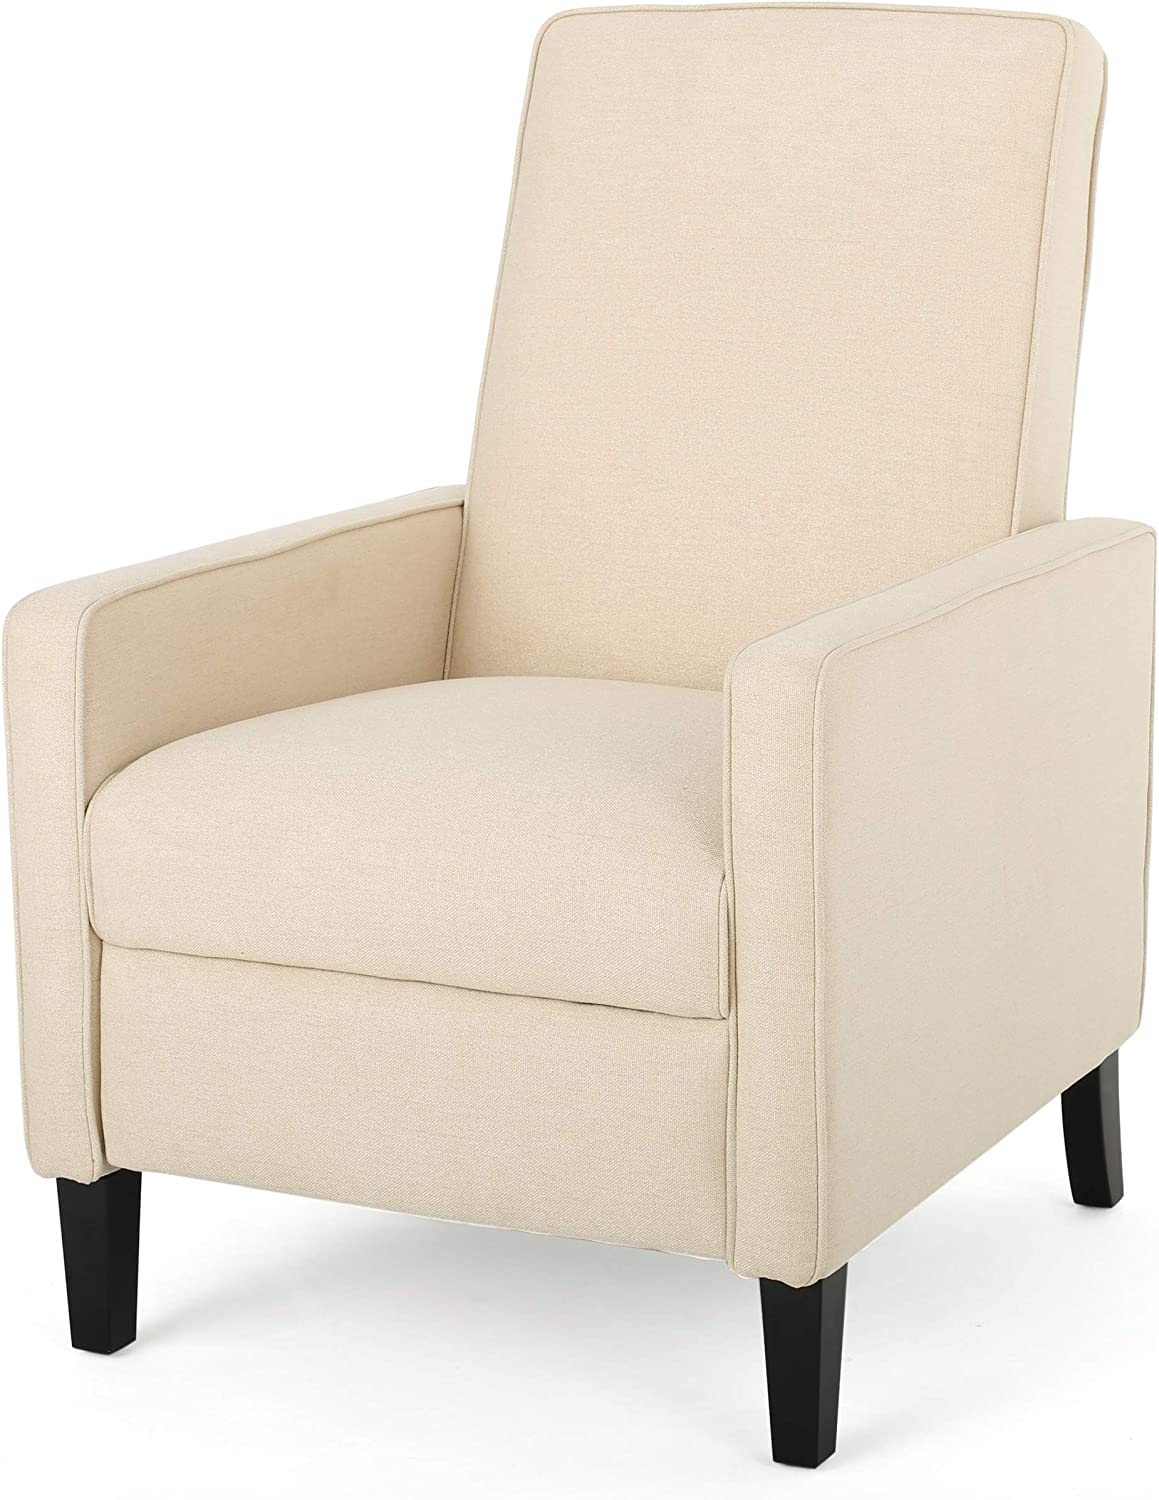 Christopher Knight Home Darvis Fabric Recliner, Beige